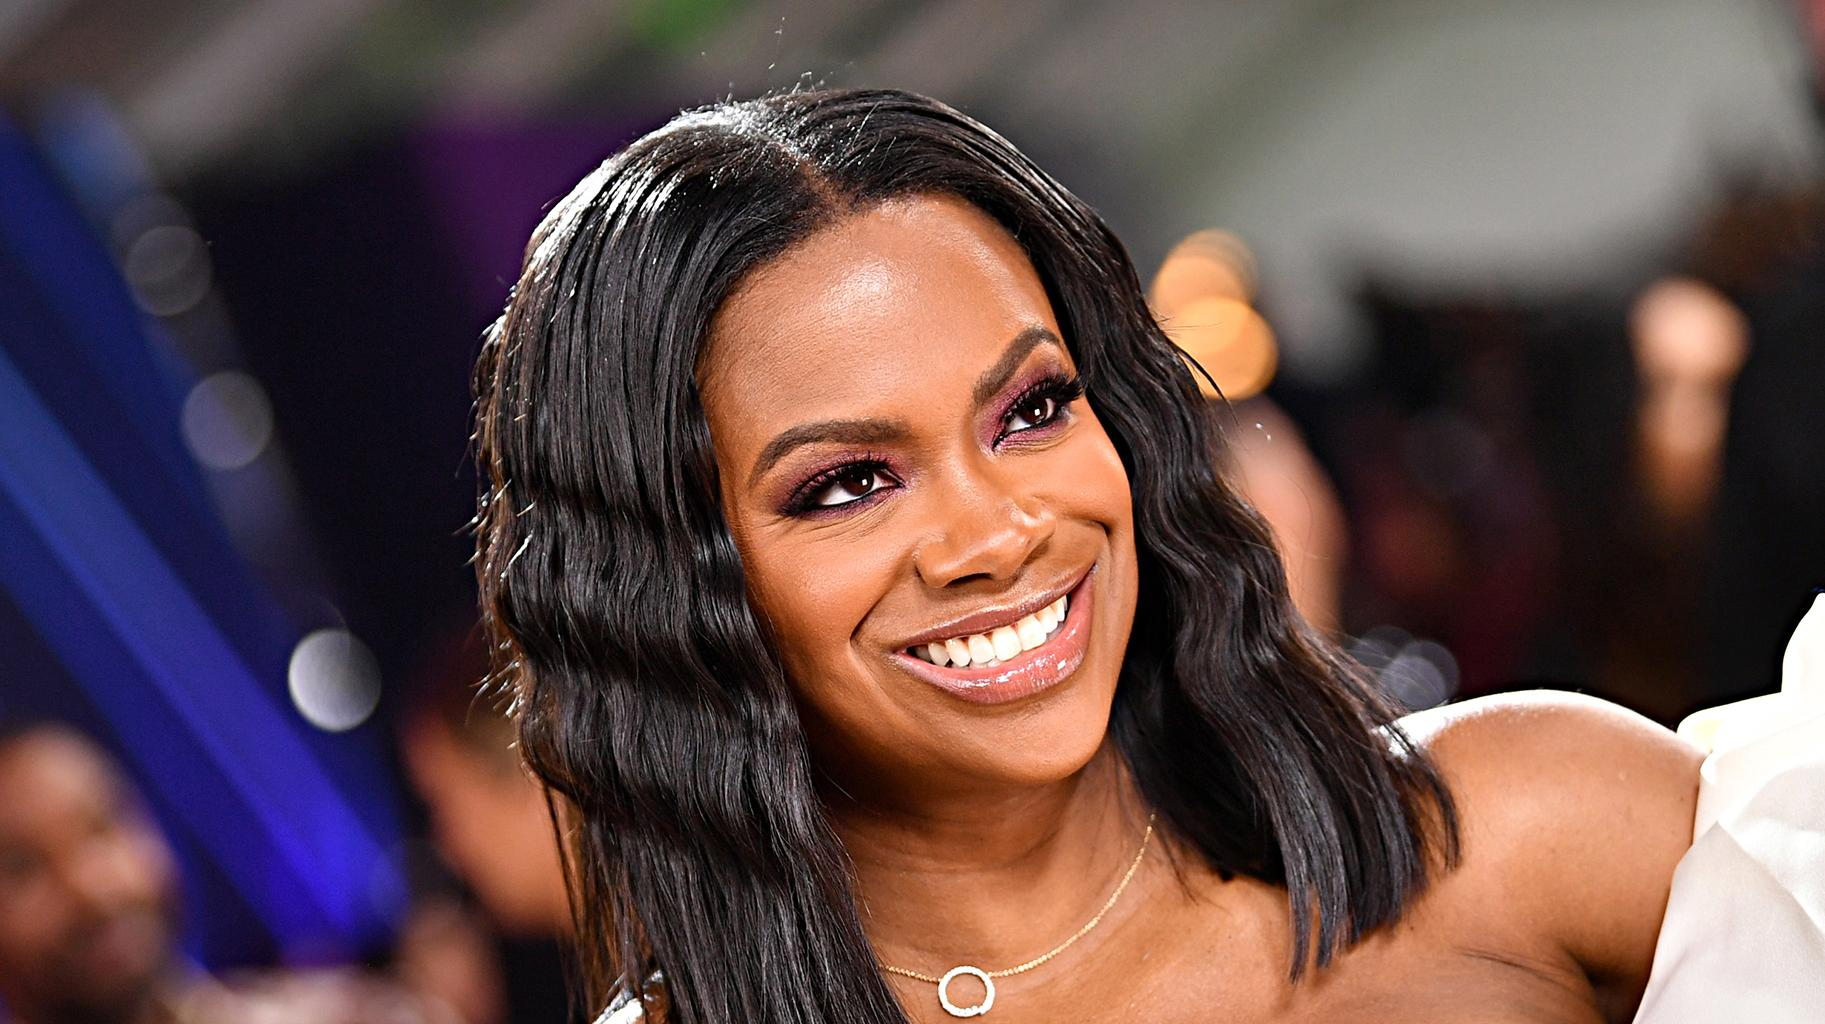 Kandi Burruss Shows Fans A Video That Cracked Her Up